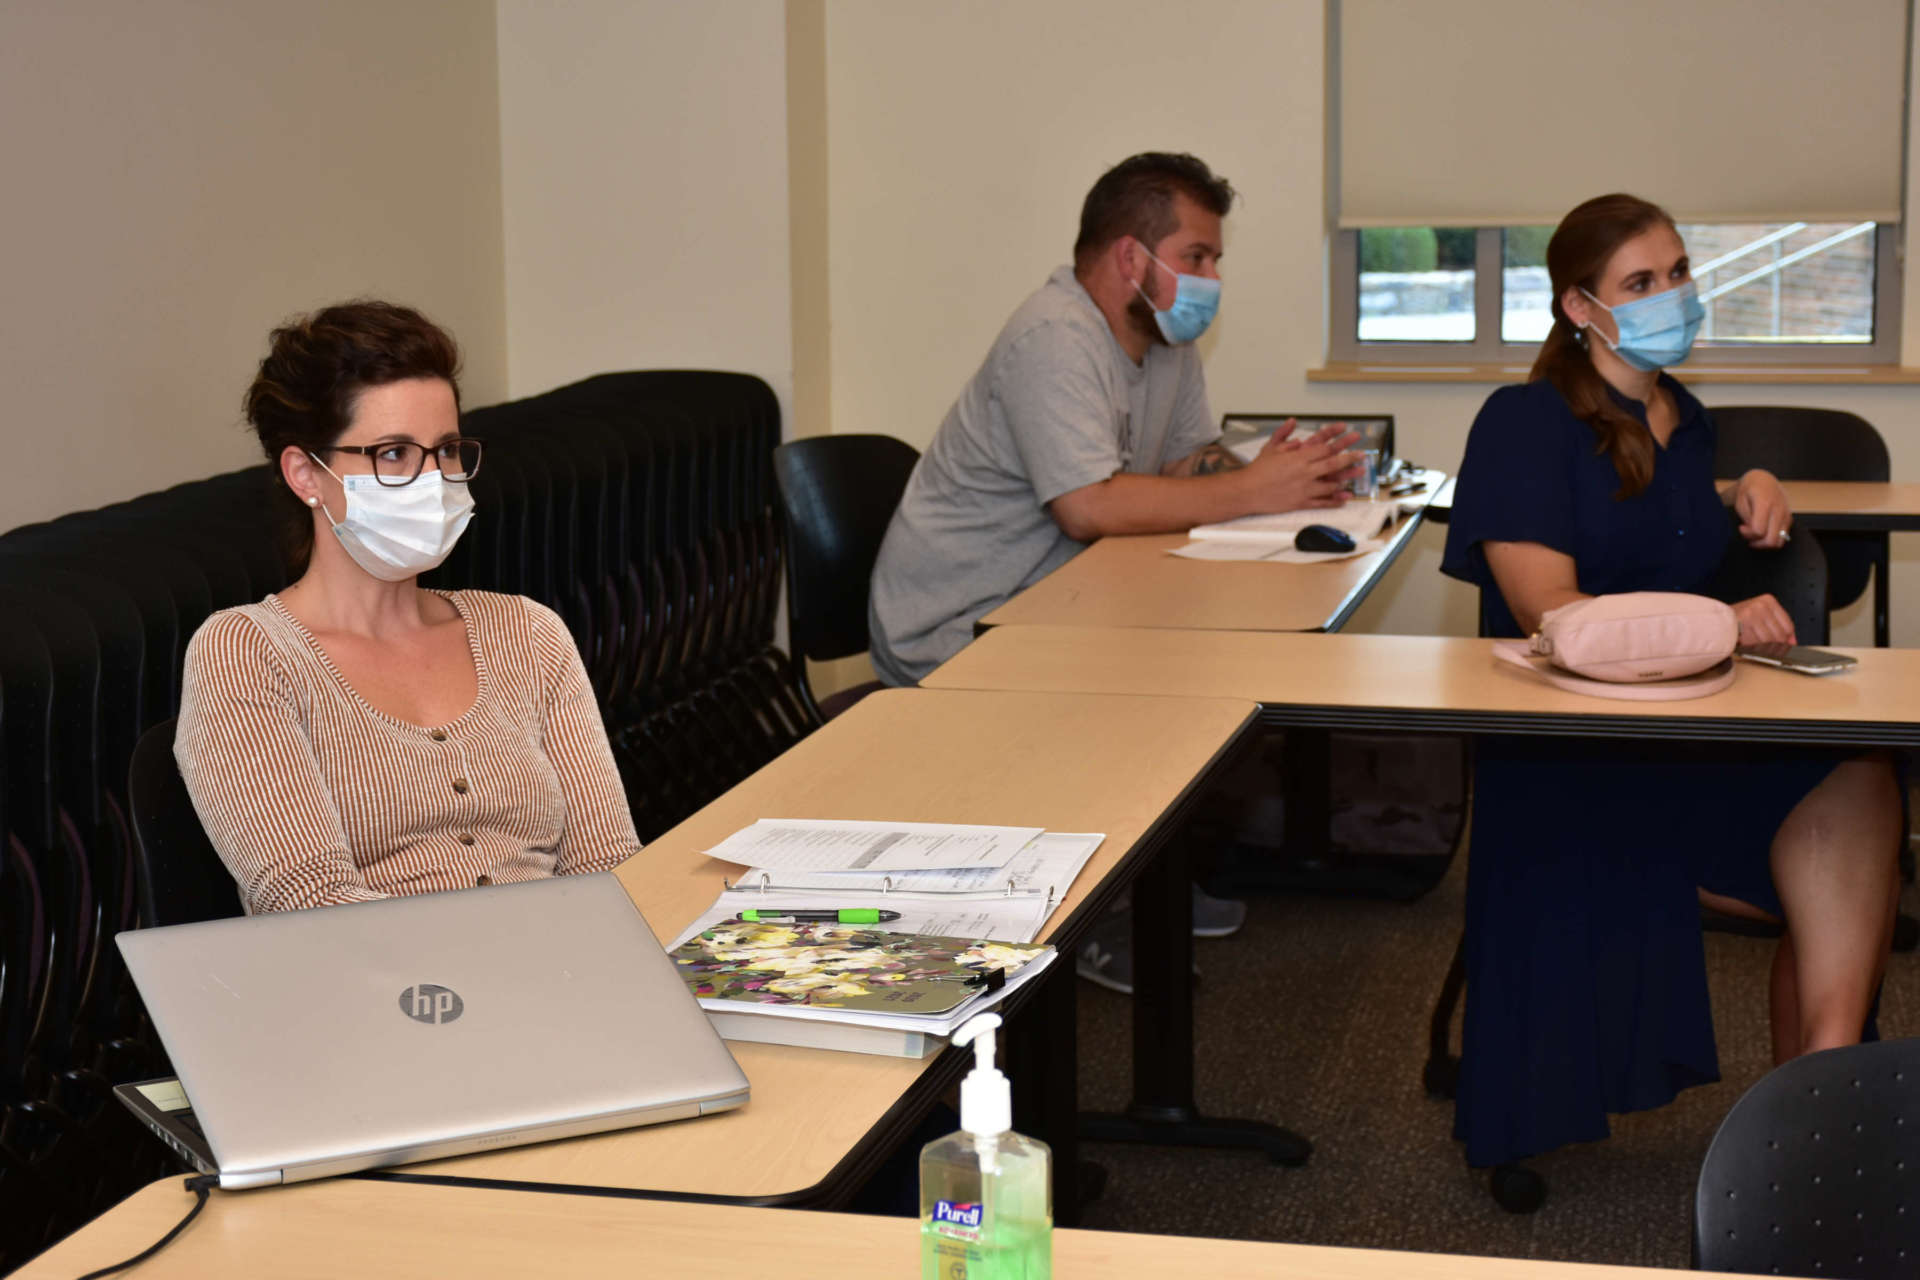 D.N.P. student Kristi Ashton of Martinsburg (foreground) attends a class on photobiomodulation.